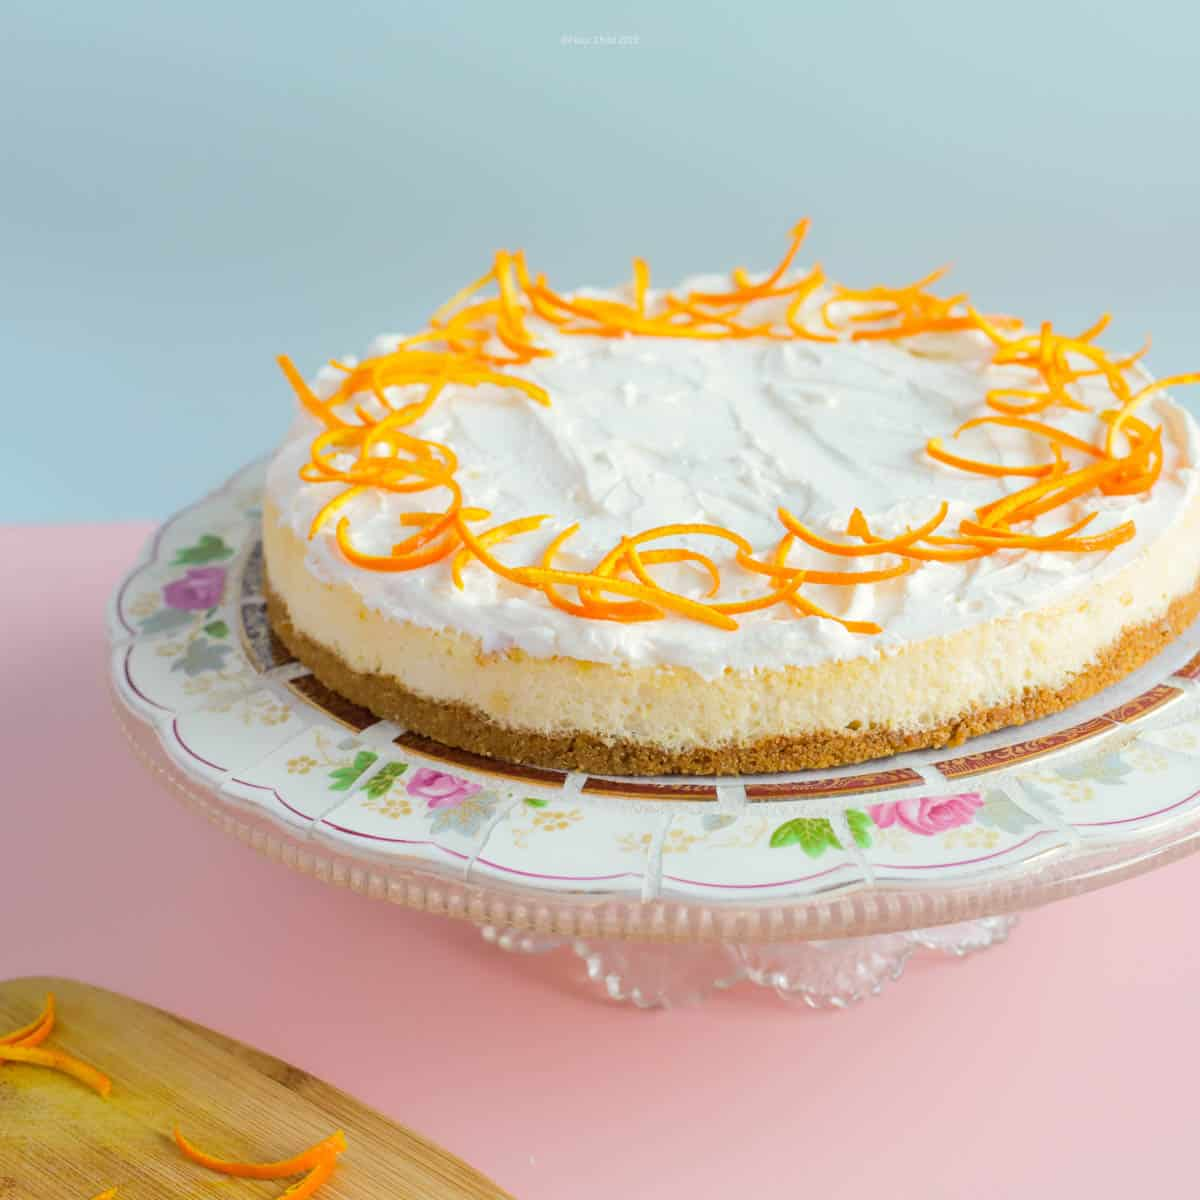 This atomic orange cheesecake with whipped cream topping is decorated with peeled orange zest around the outer rim